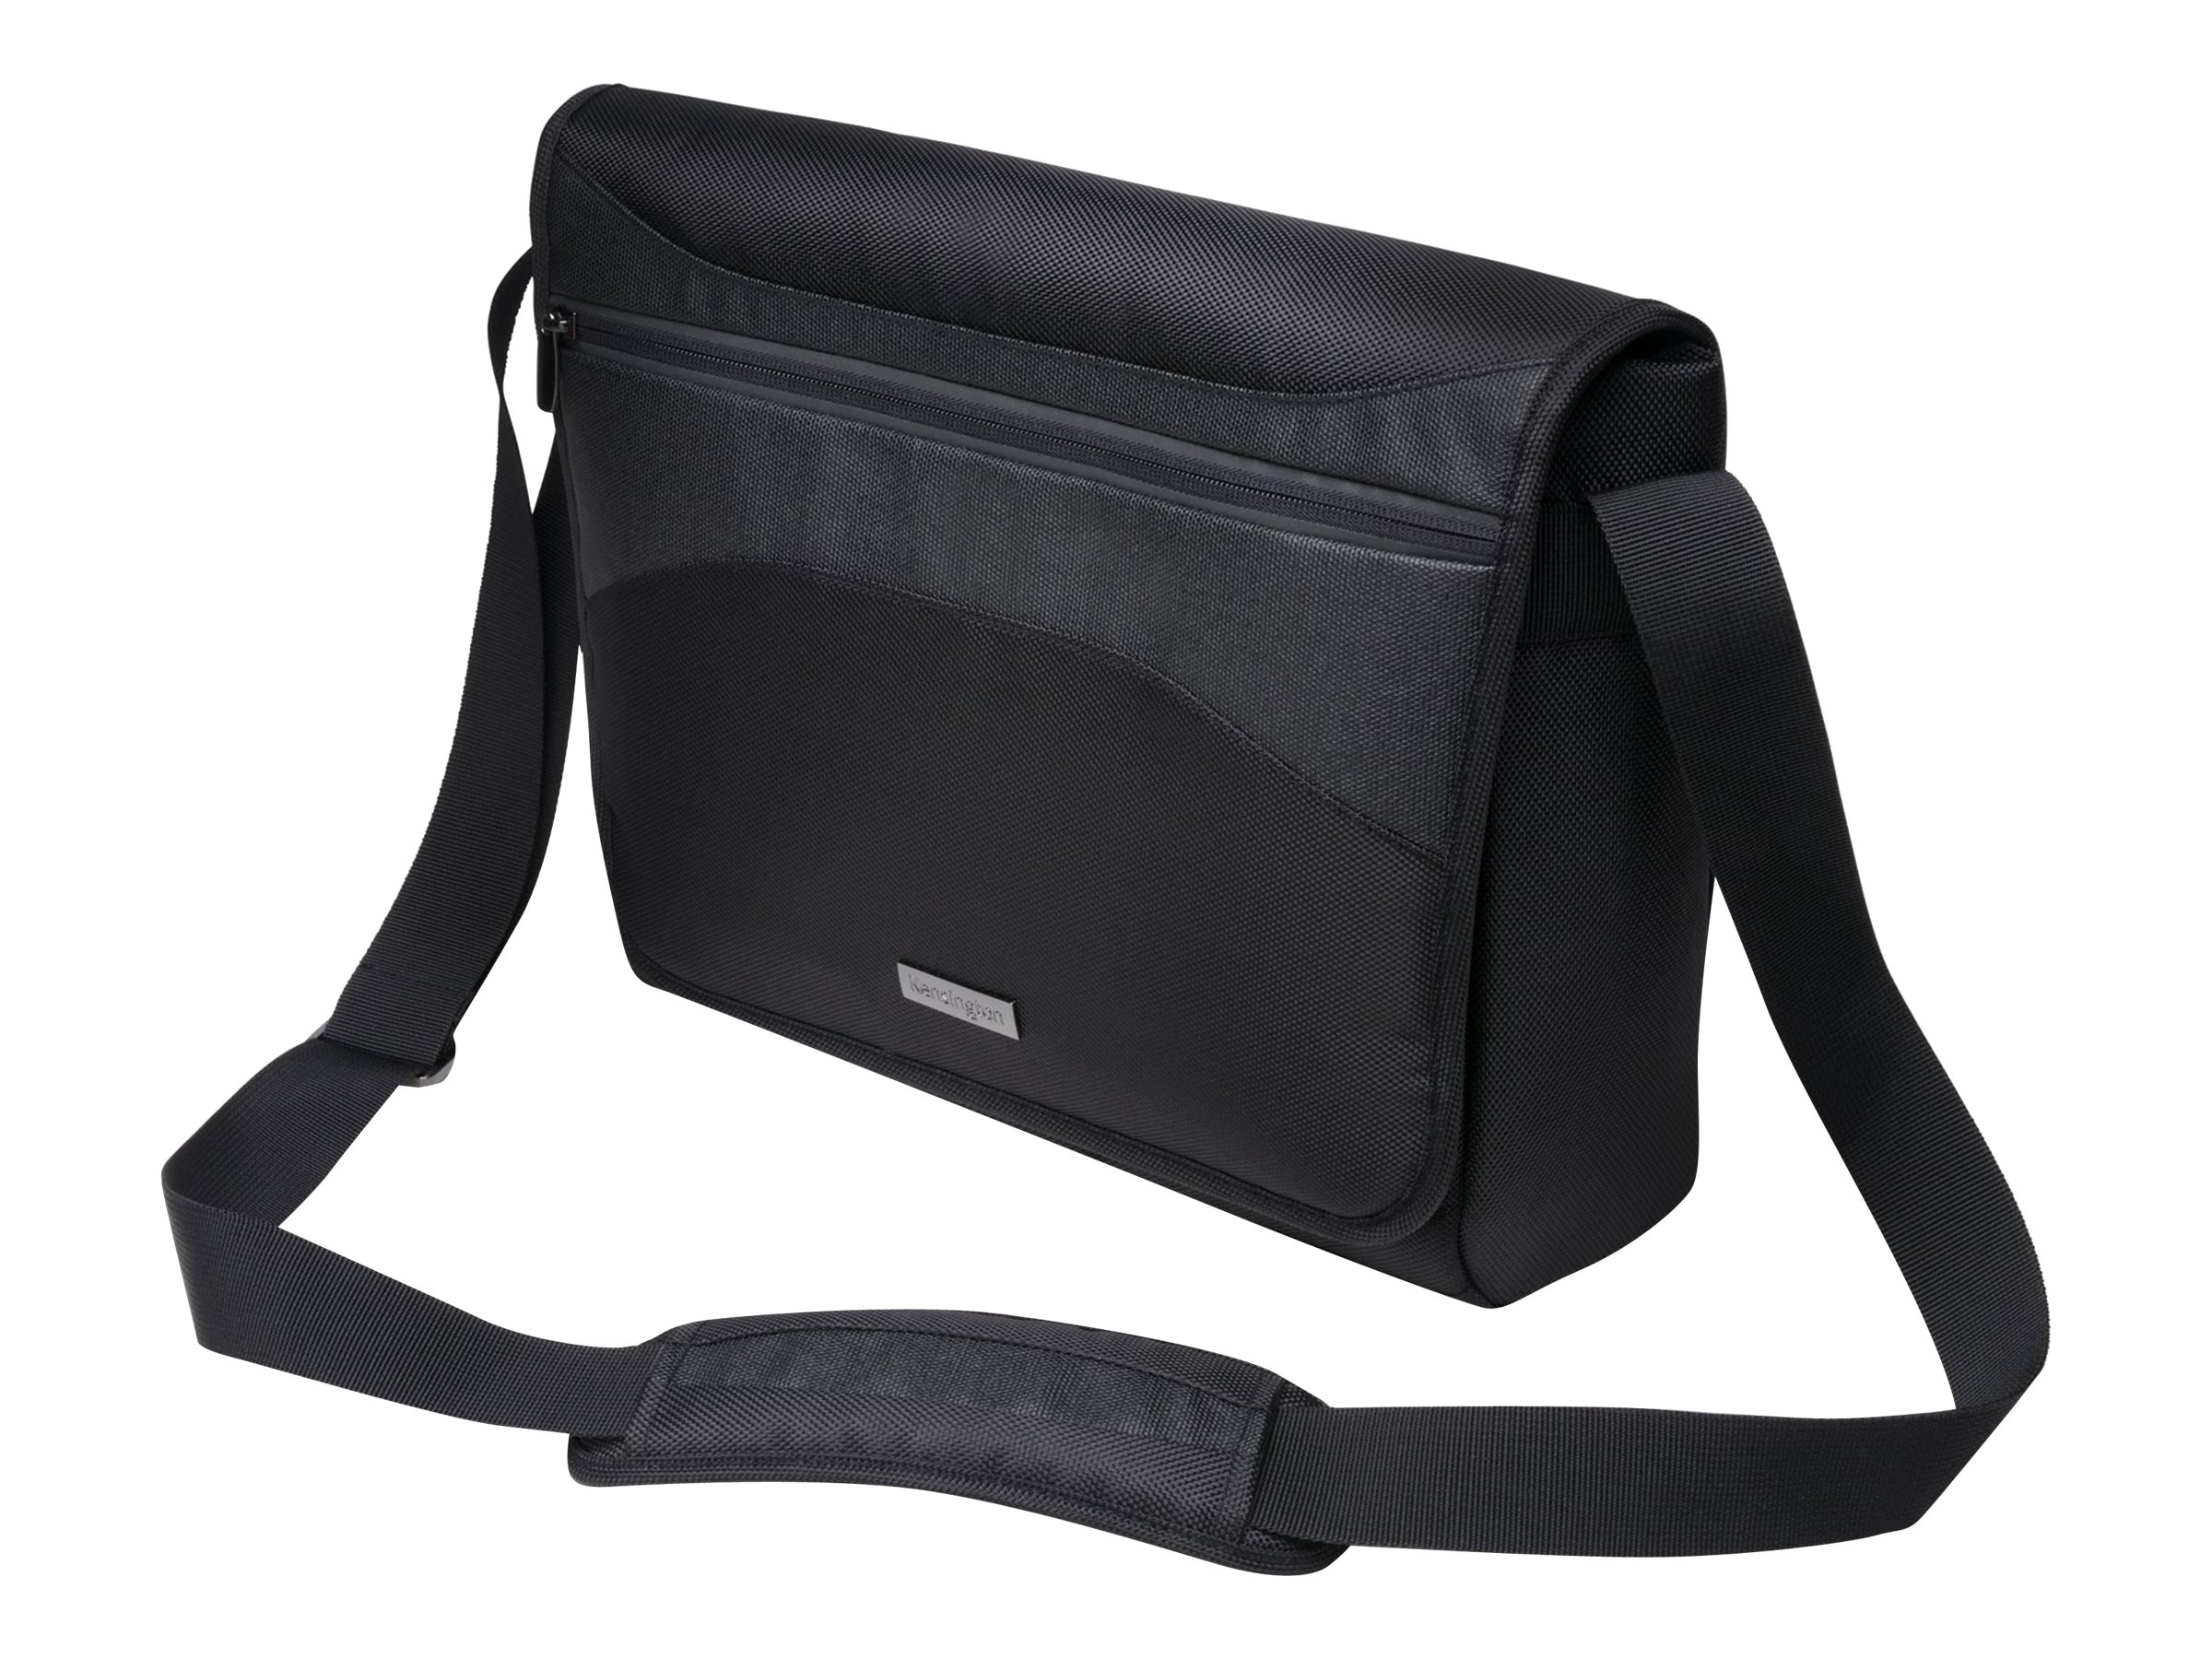 Kensington Messenger Bag for Ultrabook 14 w  Handles & Strap, Black, K62590AM, 15570049, Carrying Cases - Notebook